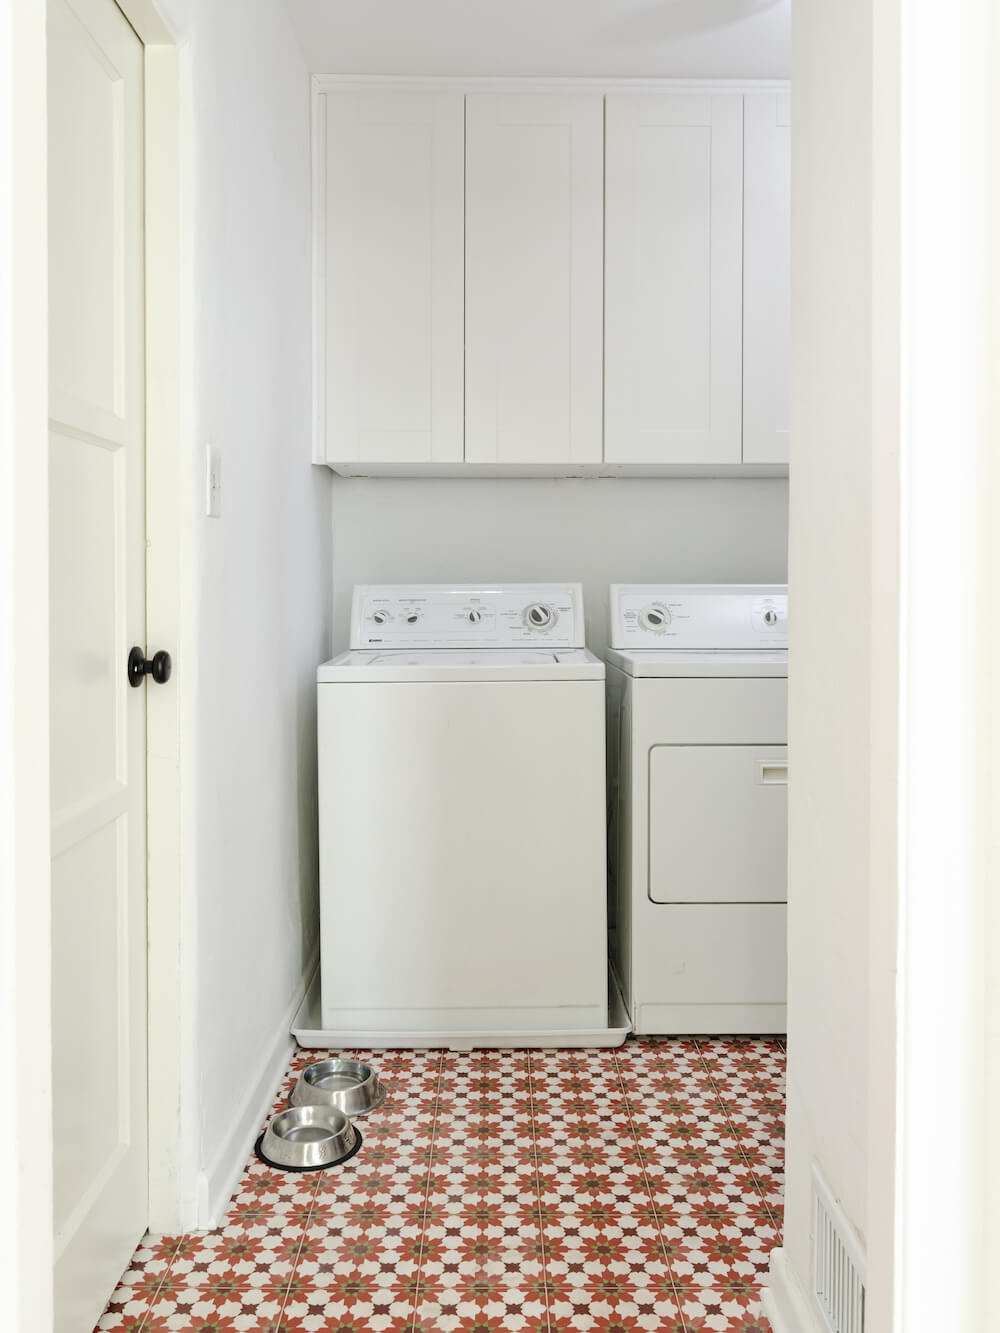 Laundry room with Moroccan floor tiles, white cabinets and white washer and dryer